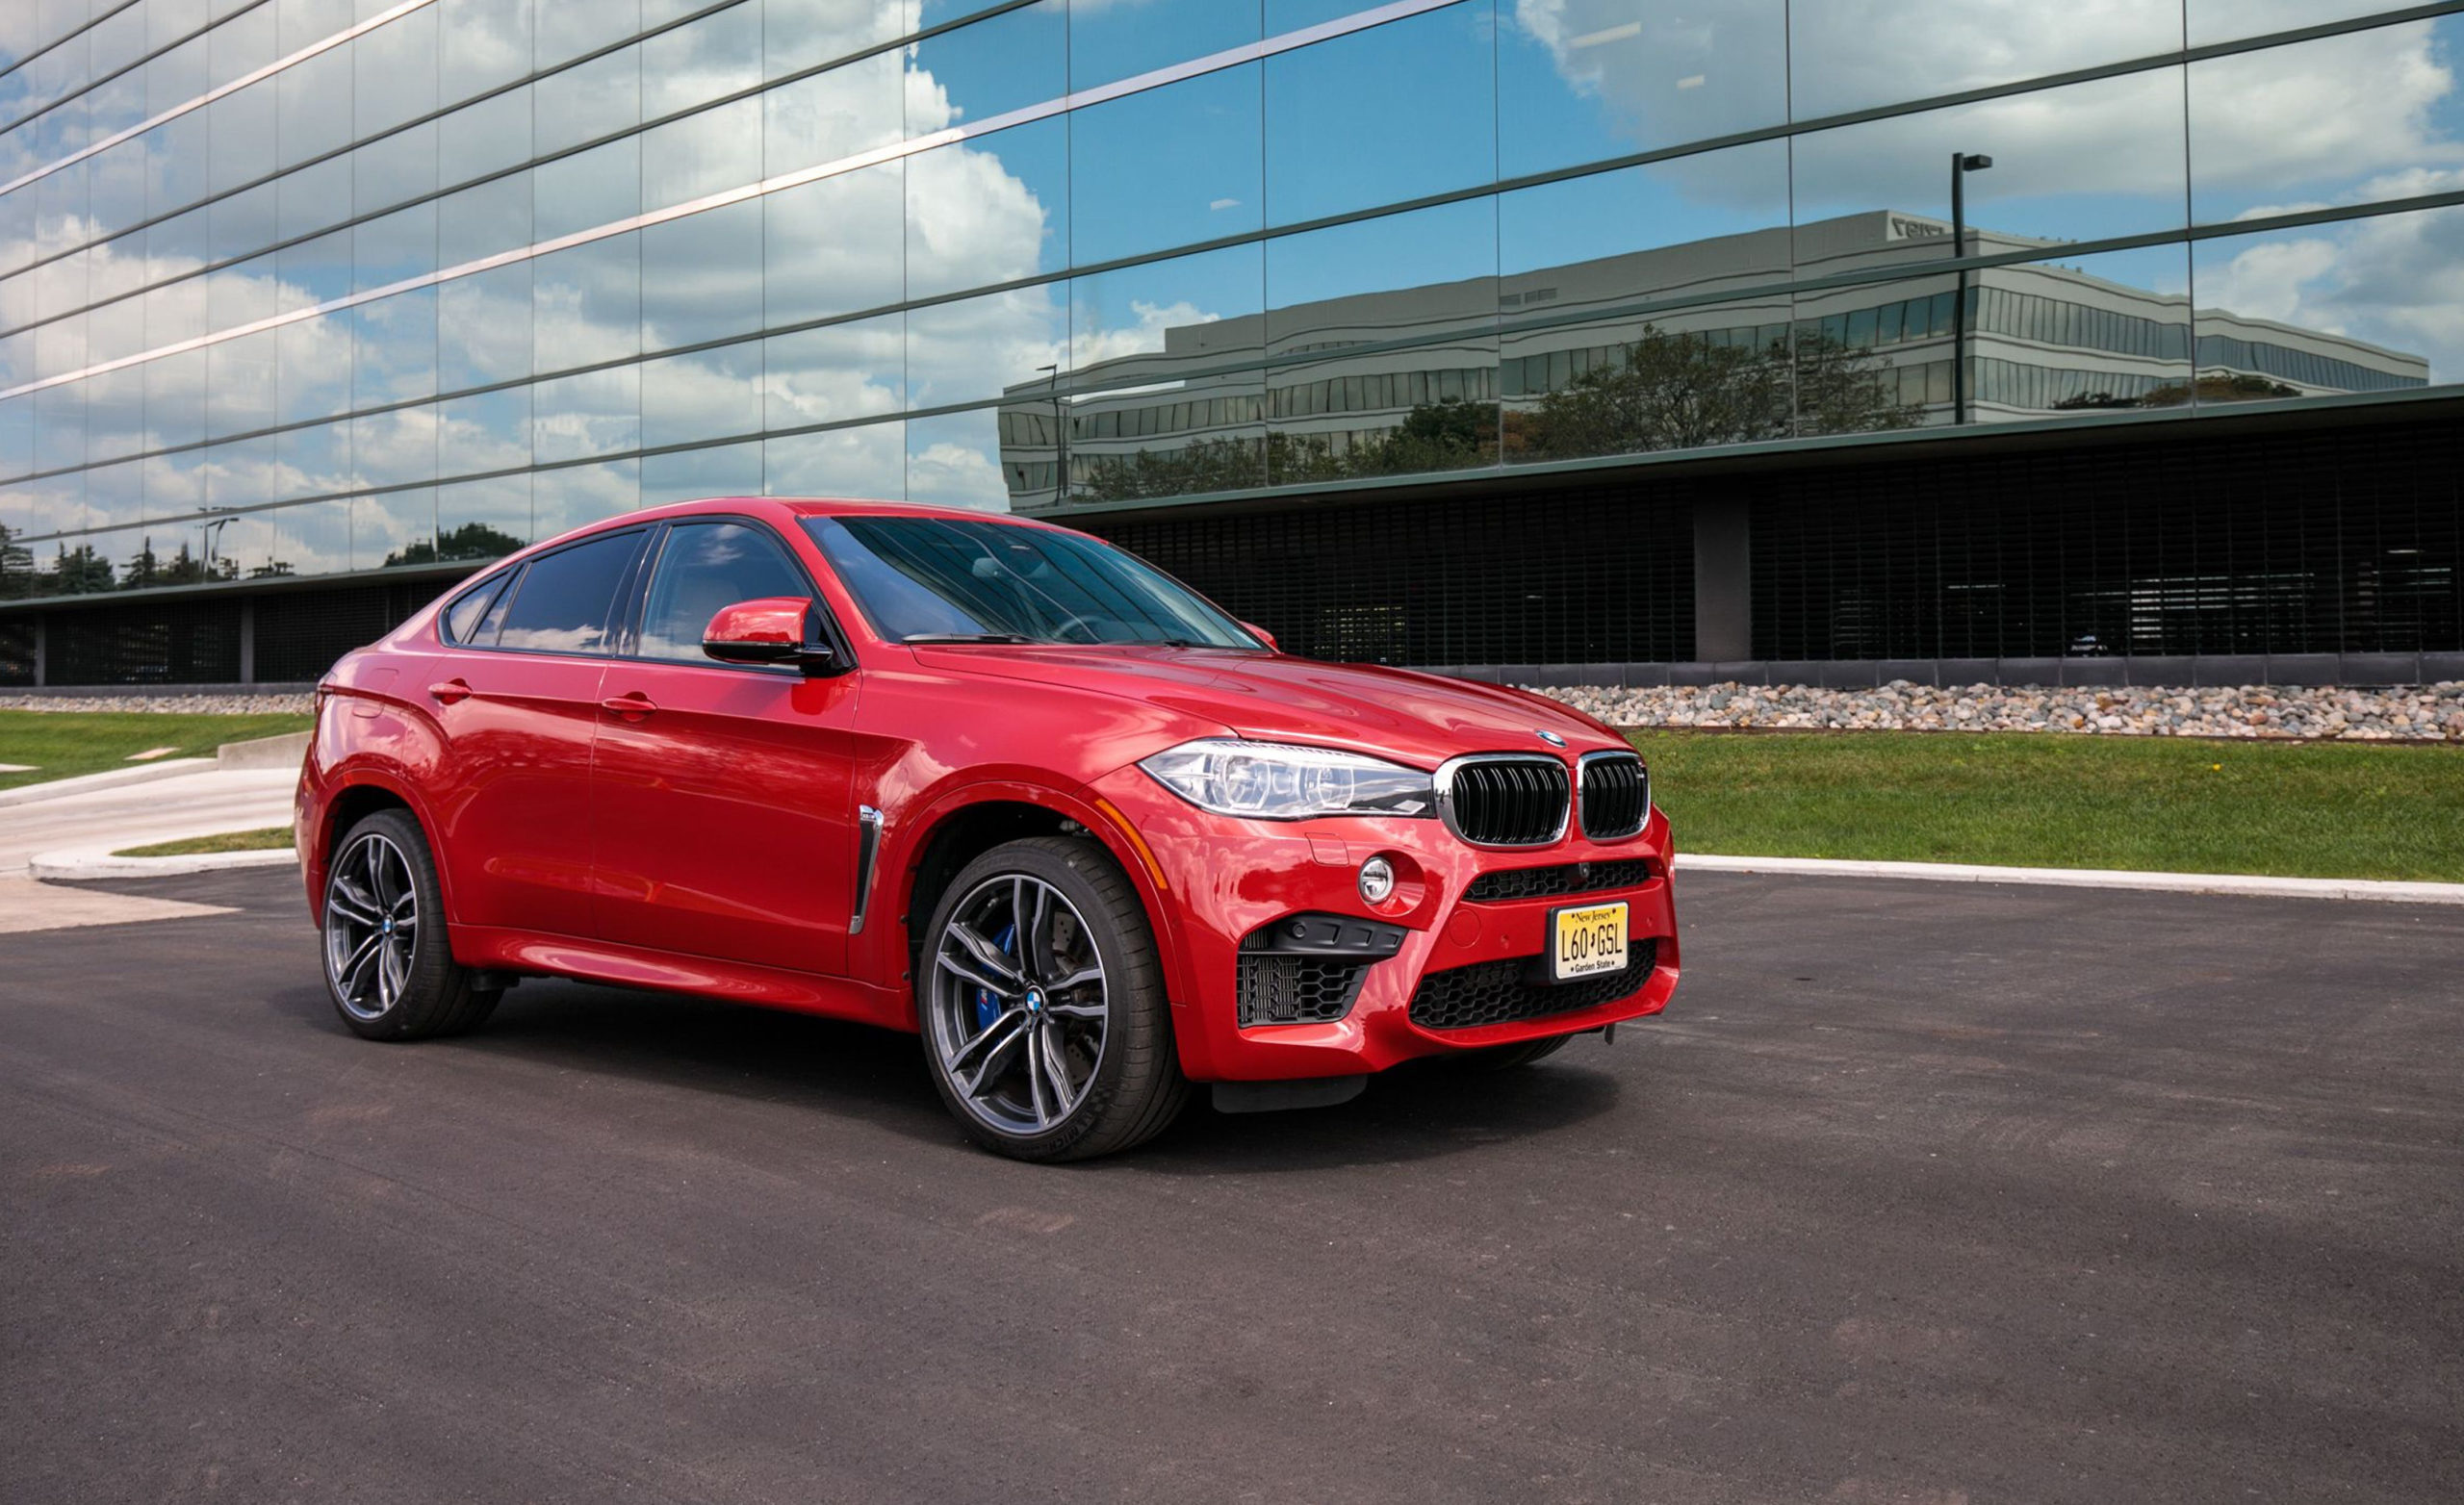 2019 BMW X6 M Review, Pricing, and Specs